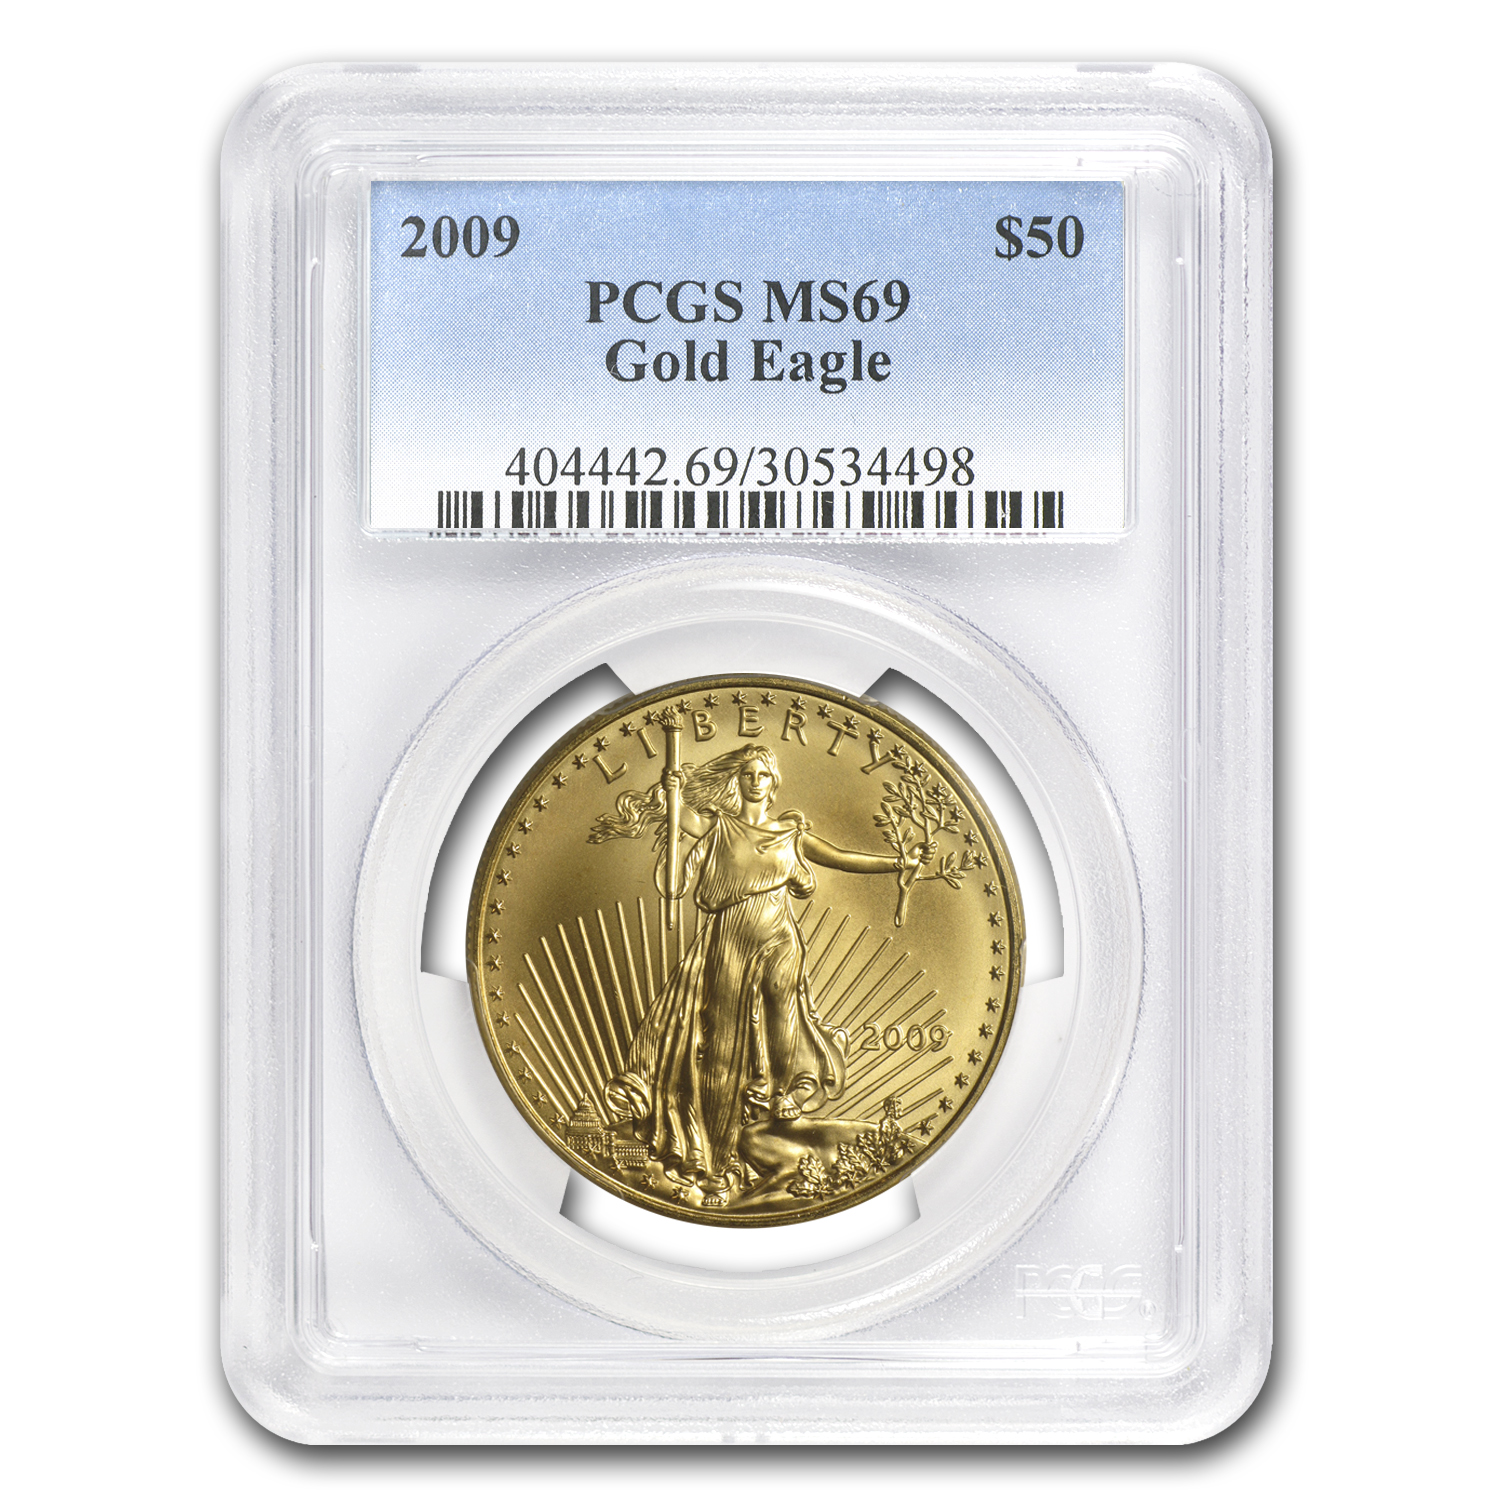 2009 1 oz Gold American Eagle MS-69 PCGS